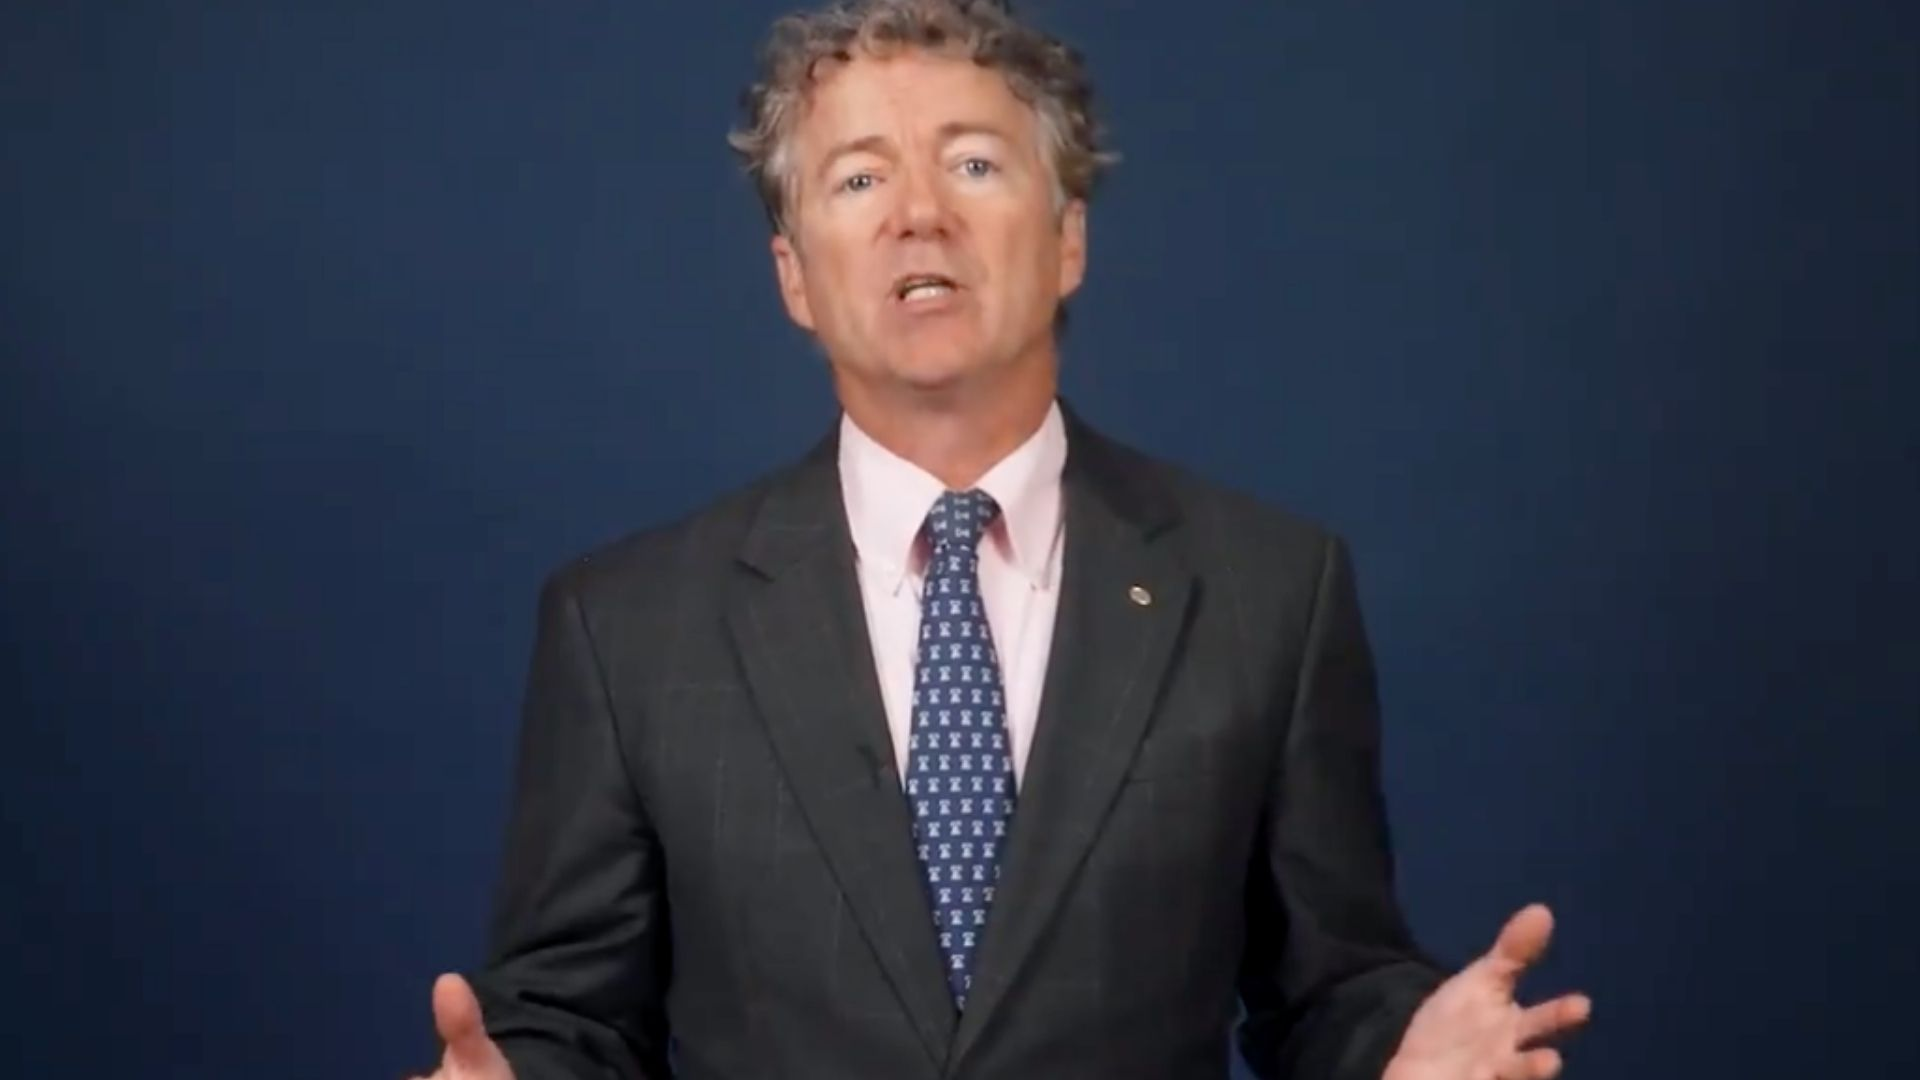 Rand Paul: 'It is time for us to resist' Mandates and closures: 'I choose freedom'